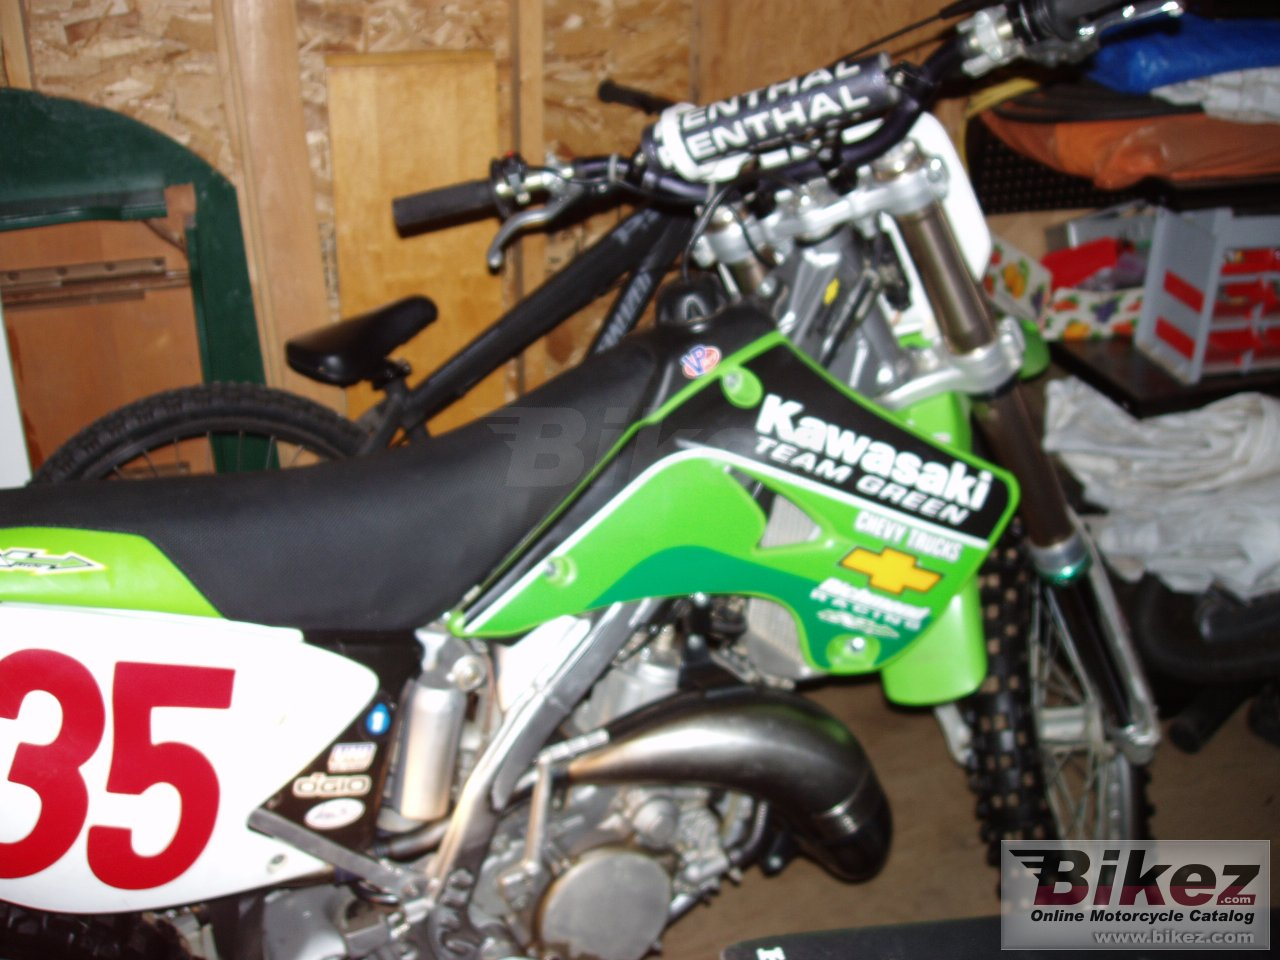 Big  125 kx 125 picture and wallpaper from Bikez.com